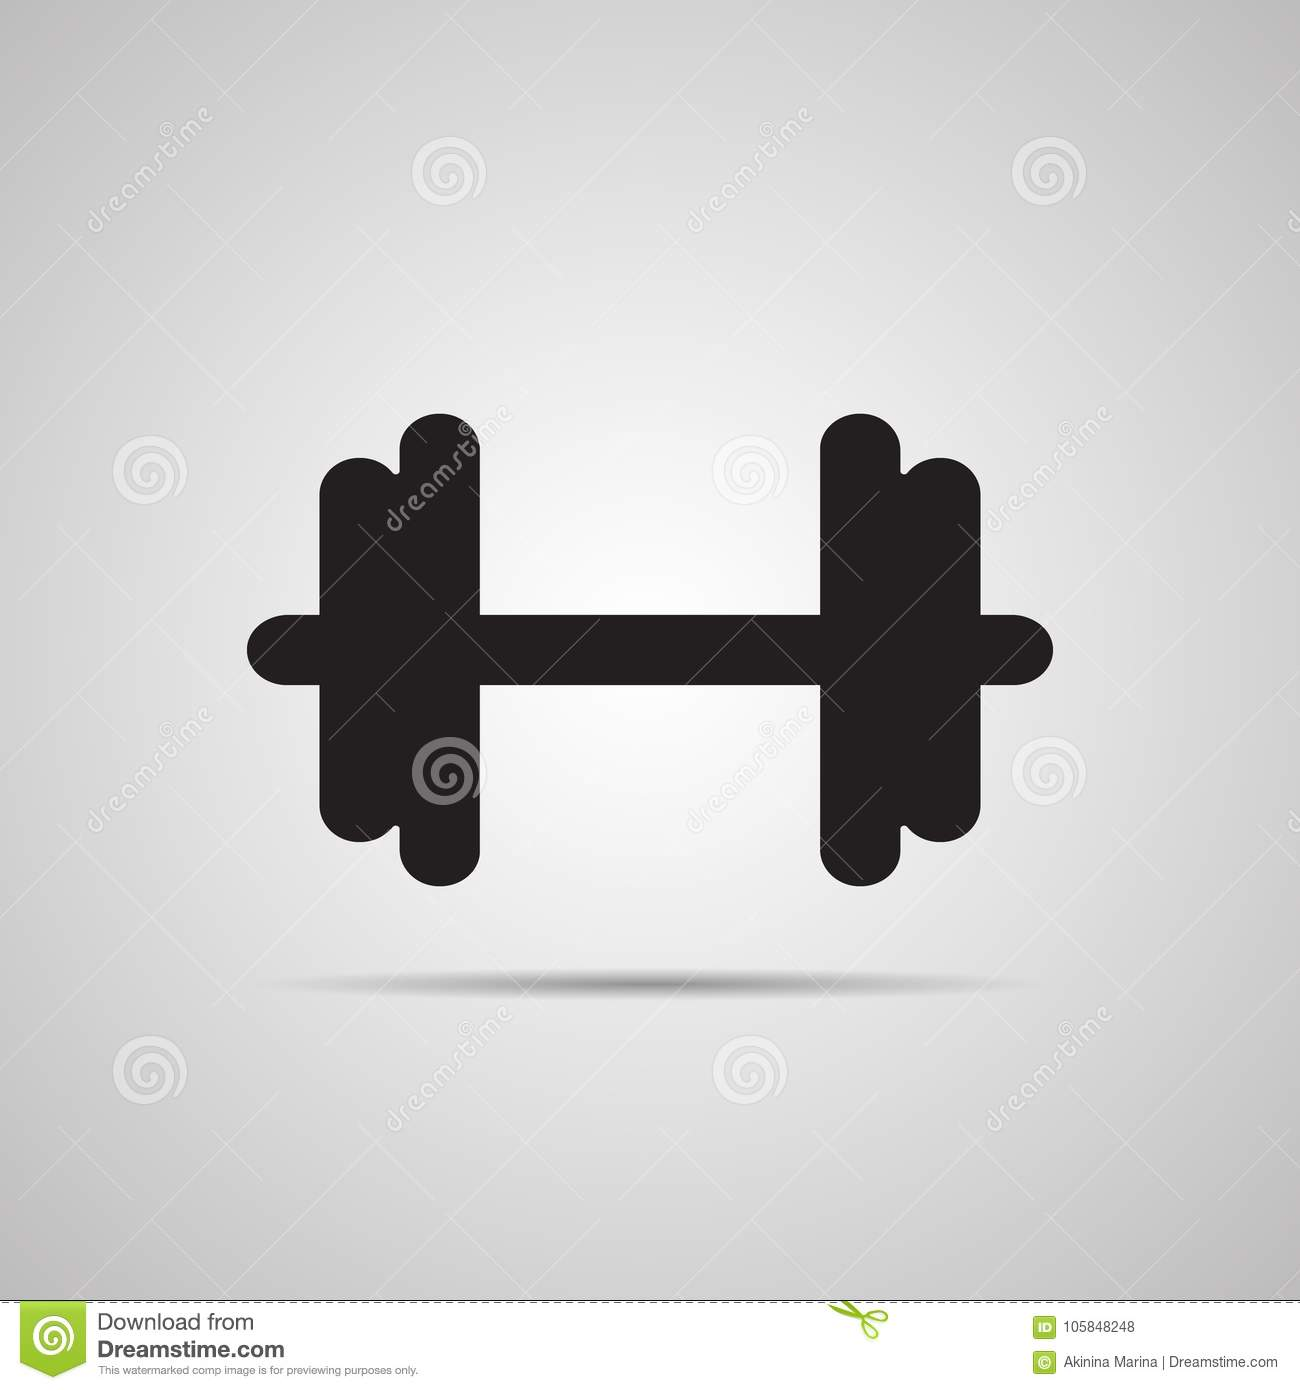 Silhouette Flat Icon Simple Vector Design With Shadow Stock Vector